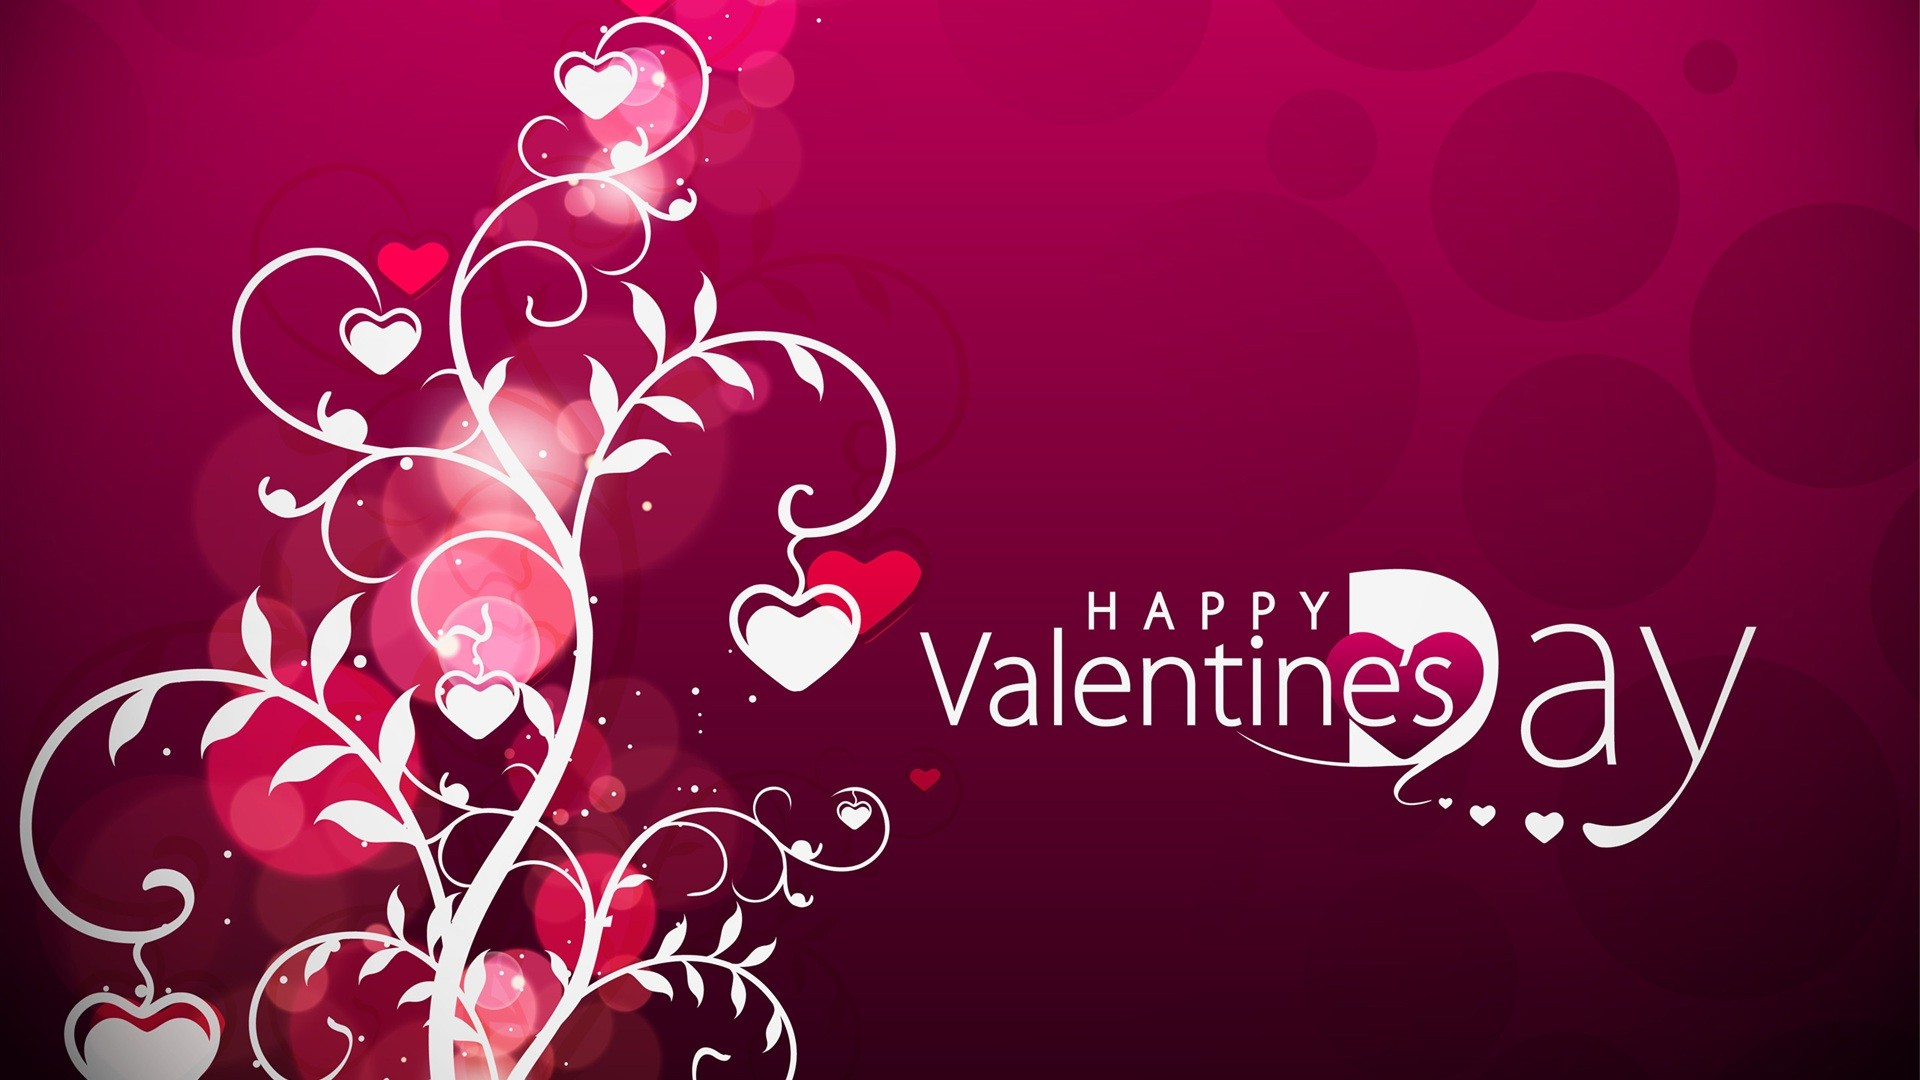 Happy Valentines Day Wallpaper 2018 Free Download